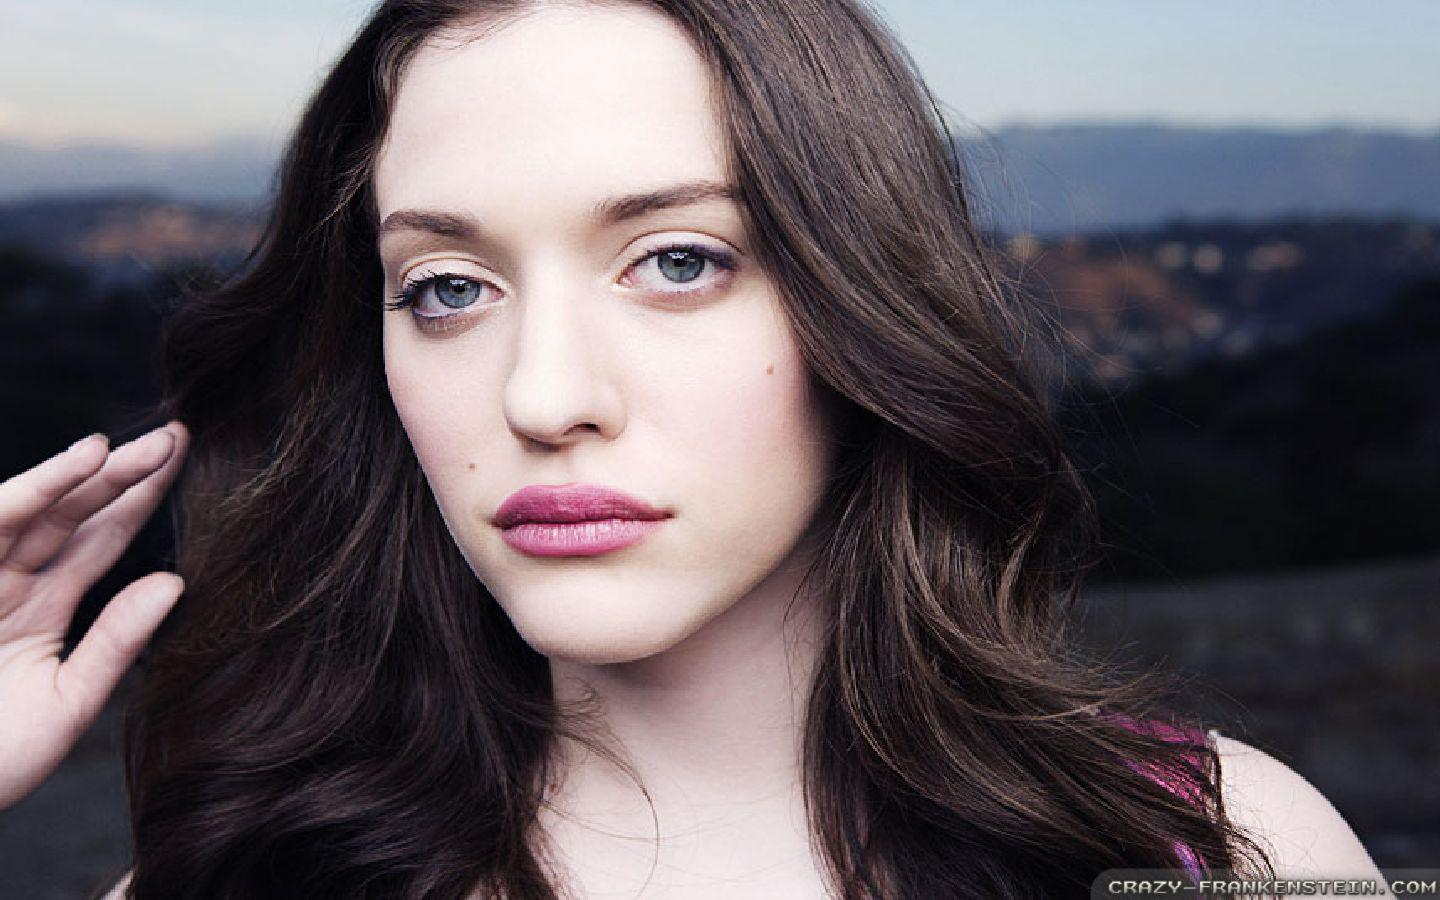 Wallpaper: Beauty Kat Dennings wallpapers. Resolution: 1024x768 | 1280x1024 | 1600x1200